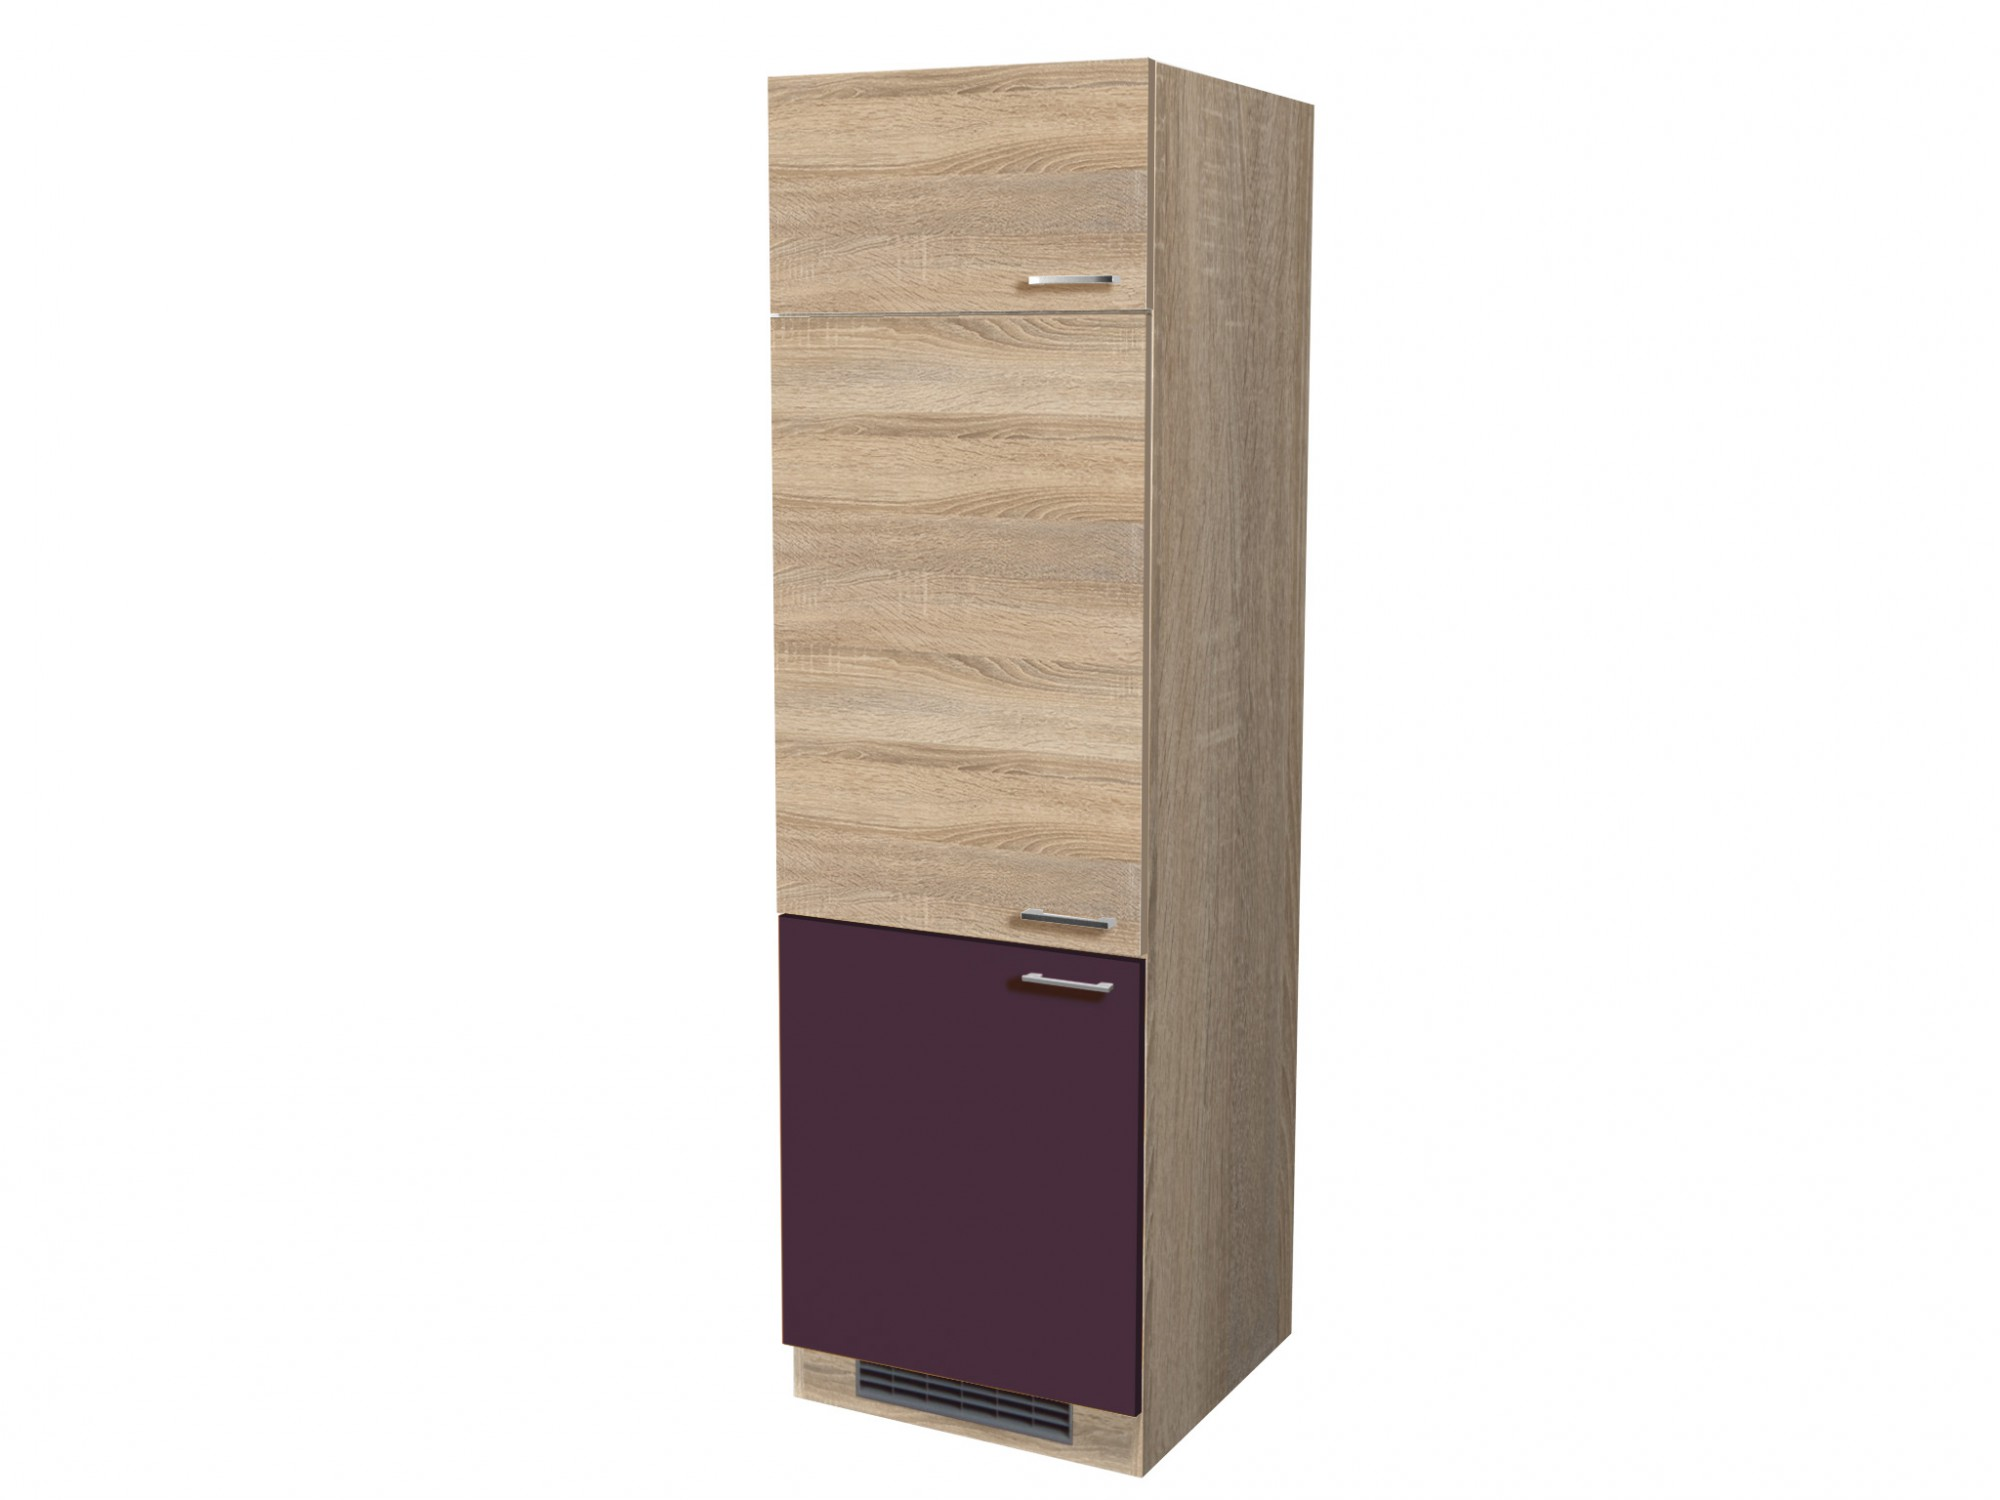 k hlschrankumbau rom umbauschrank k chenschrank aubergine. Black Bedroom Furniture Sets. Home Design Ideas